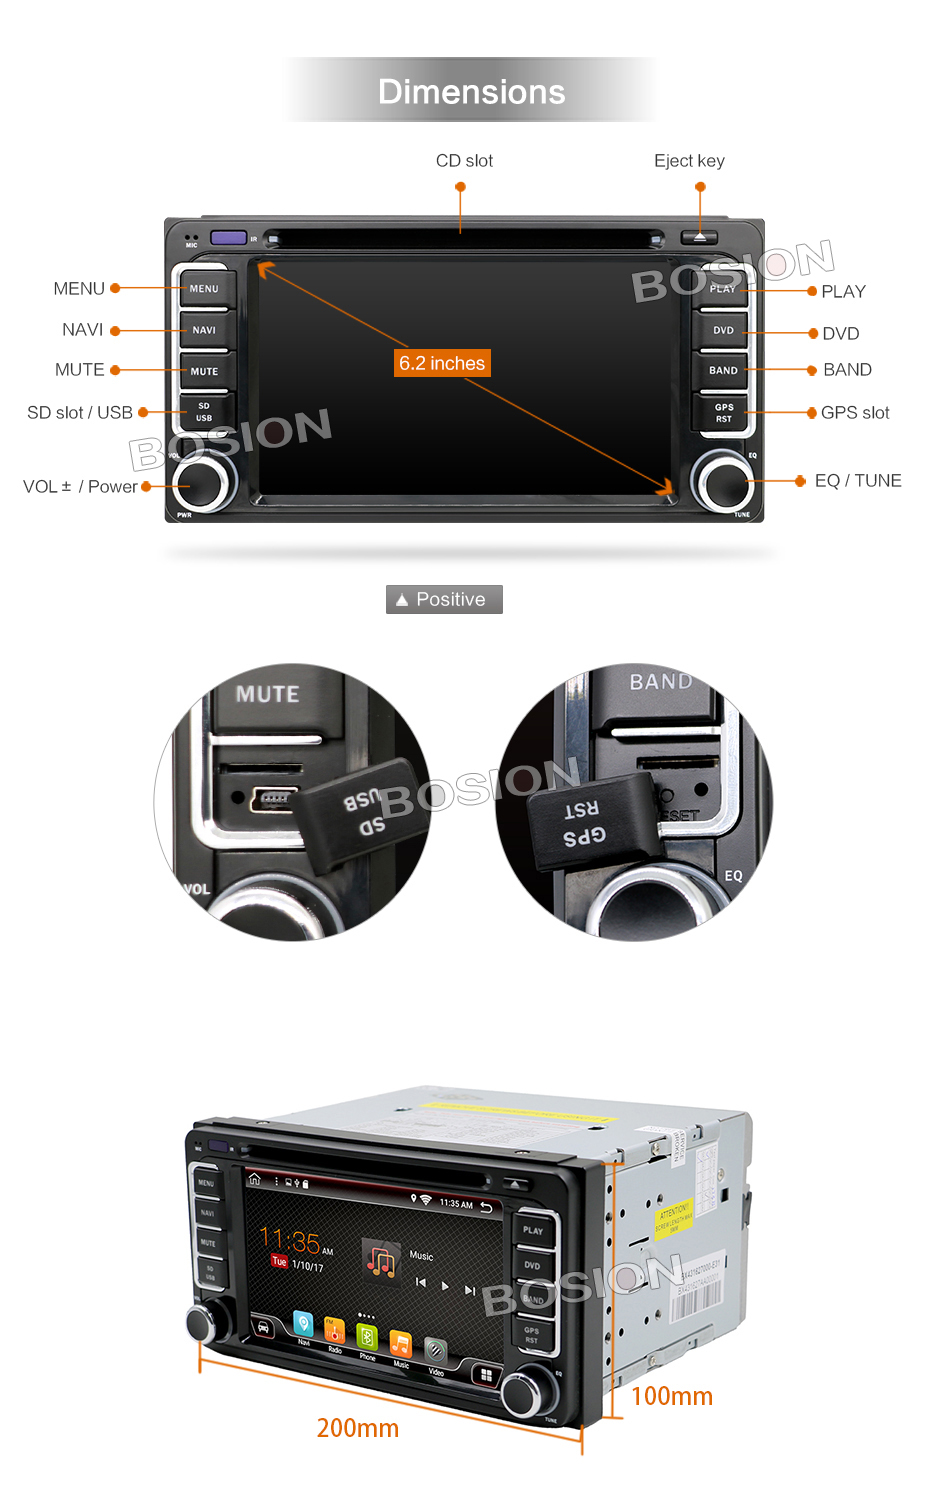 รถ Caribbean XCD player 2